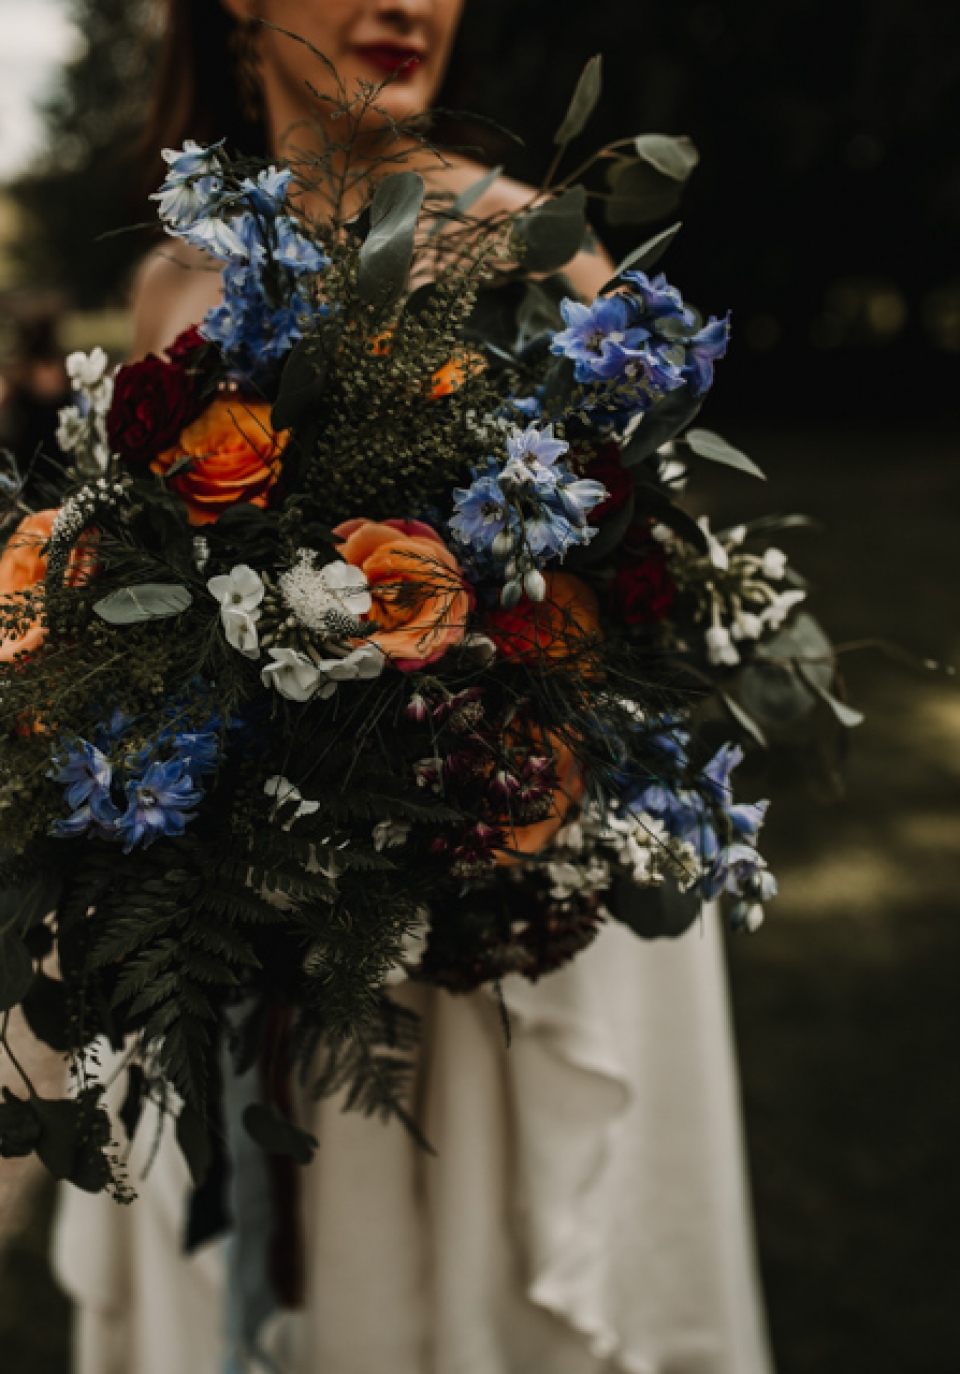 magnificent wedding bouquet